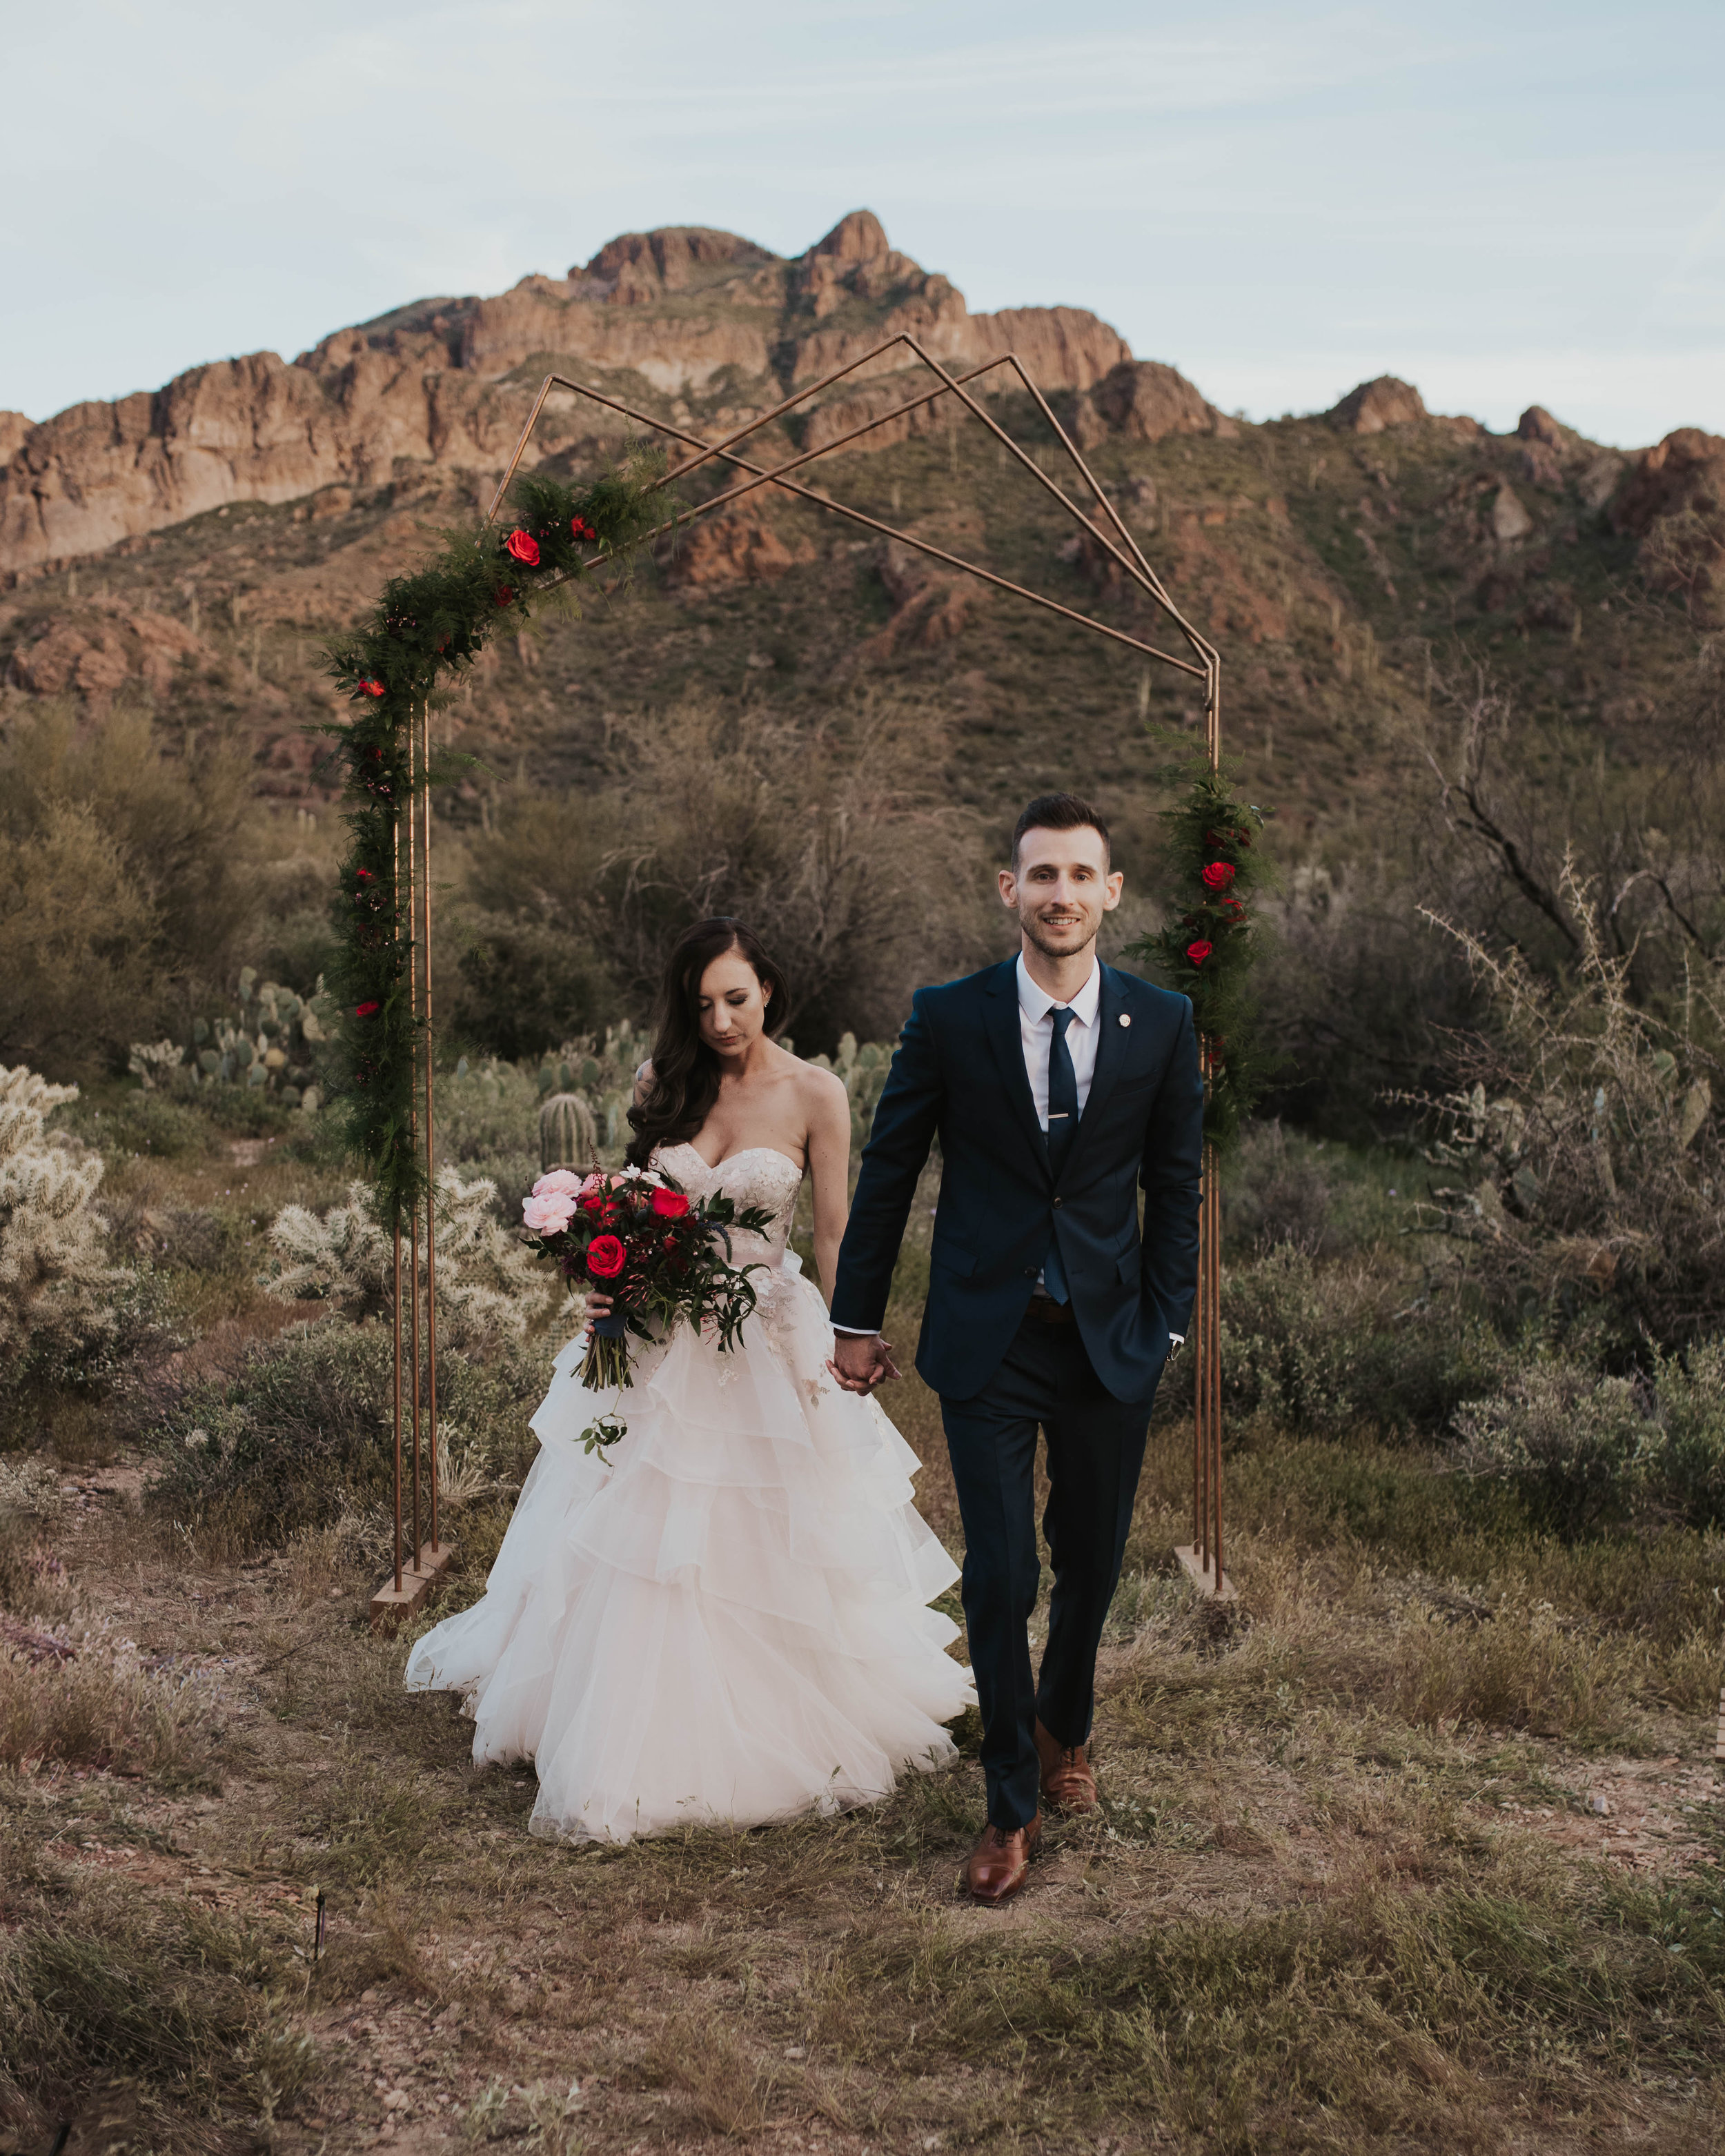 Desert Wedding at Tela Peralta - Arizona florist Phoenix scottsdale Mesa chandler Sedona Flagstaff Prescott - Modern Angular Ceremony Arch in the Desert Landscape